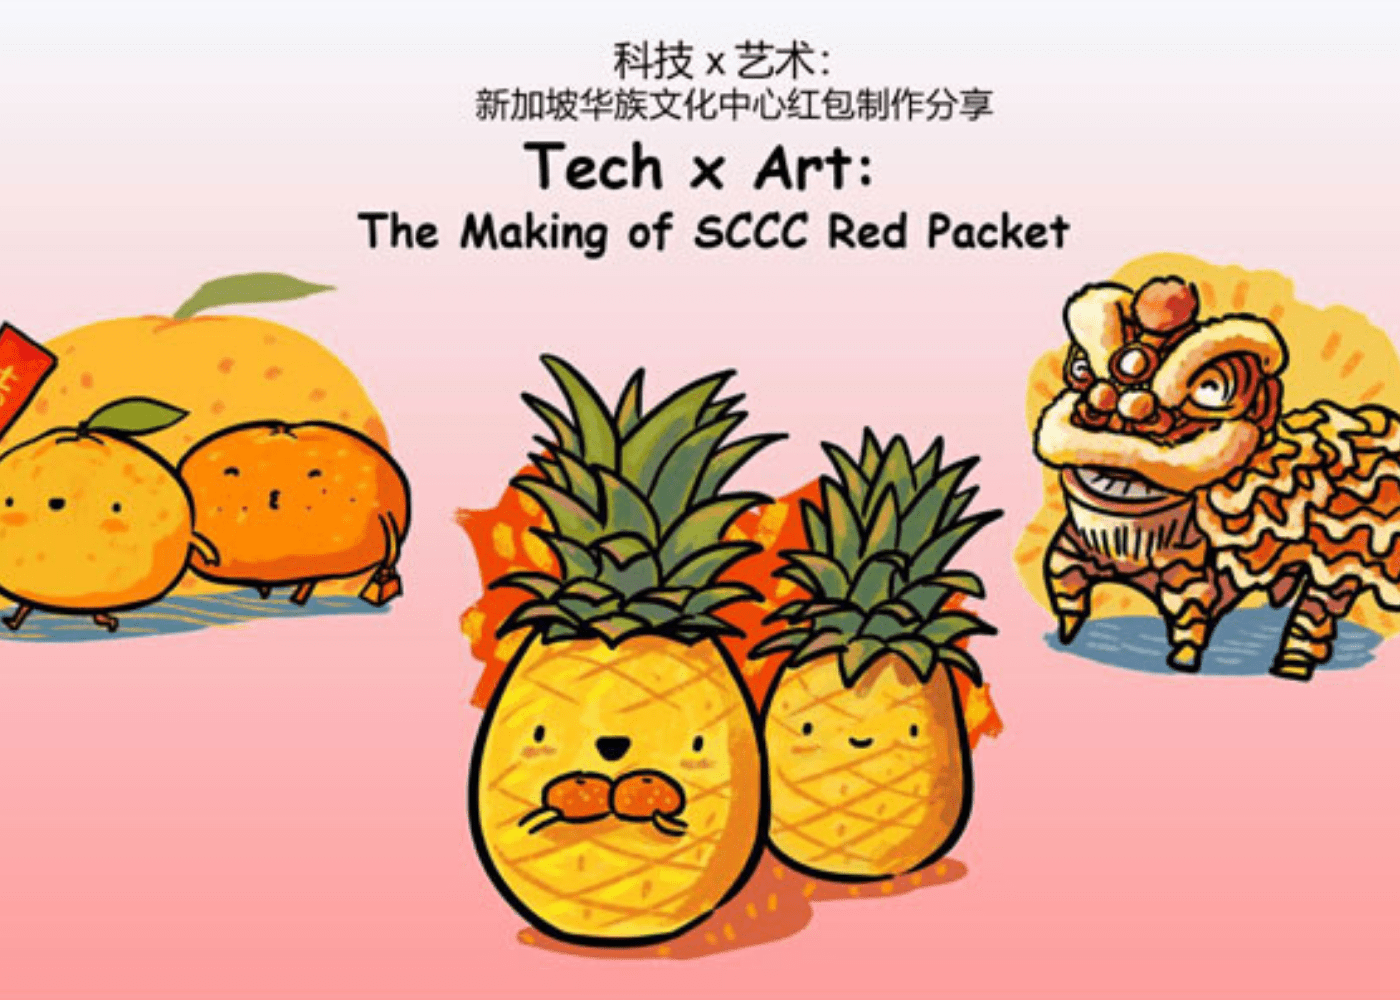 Make your own red packet at Tech x Art: The Making of SCCC Red Packet